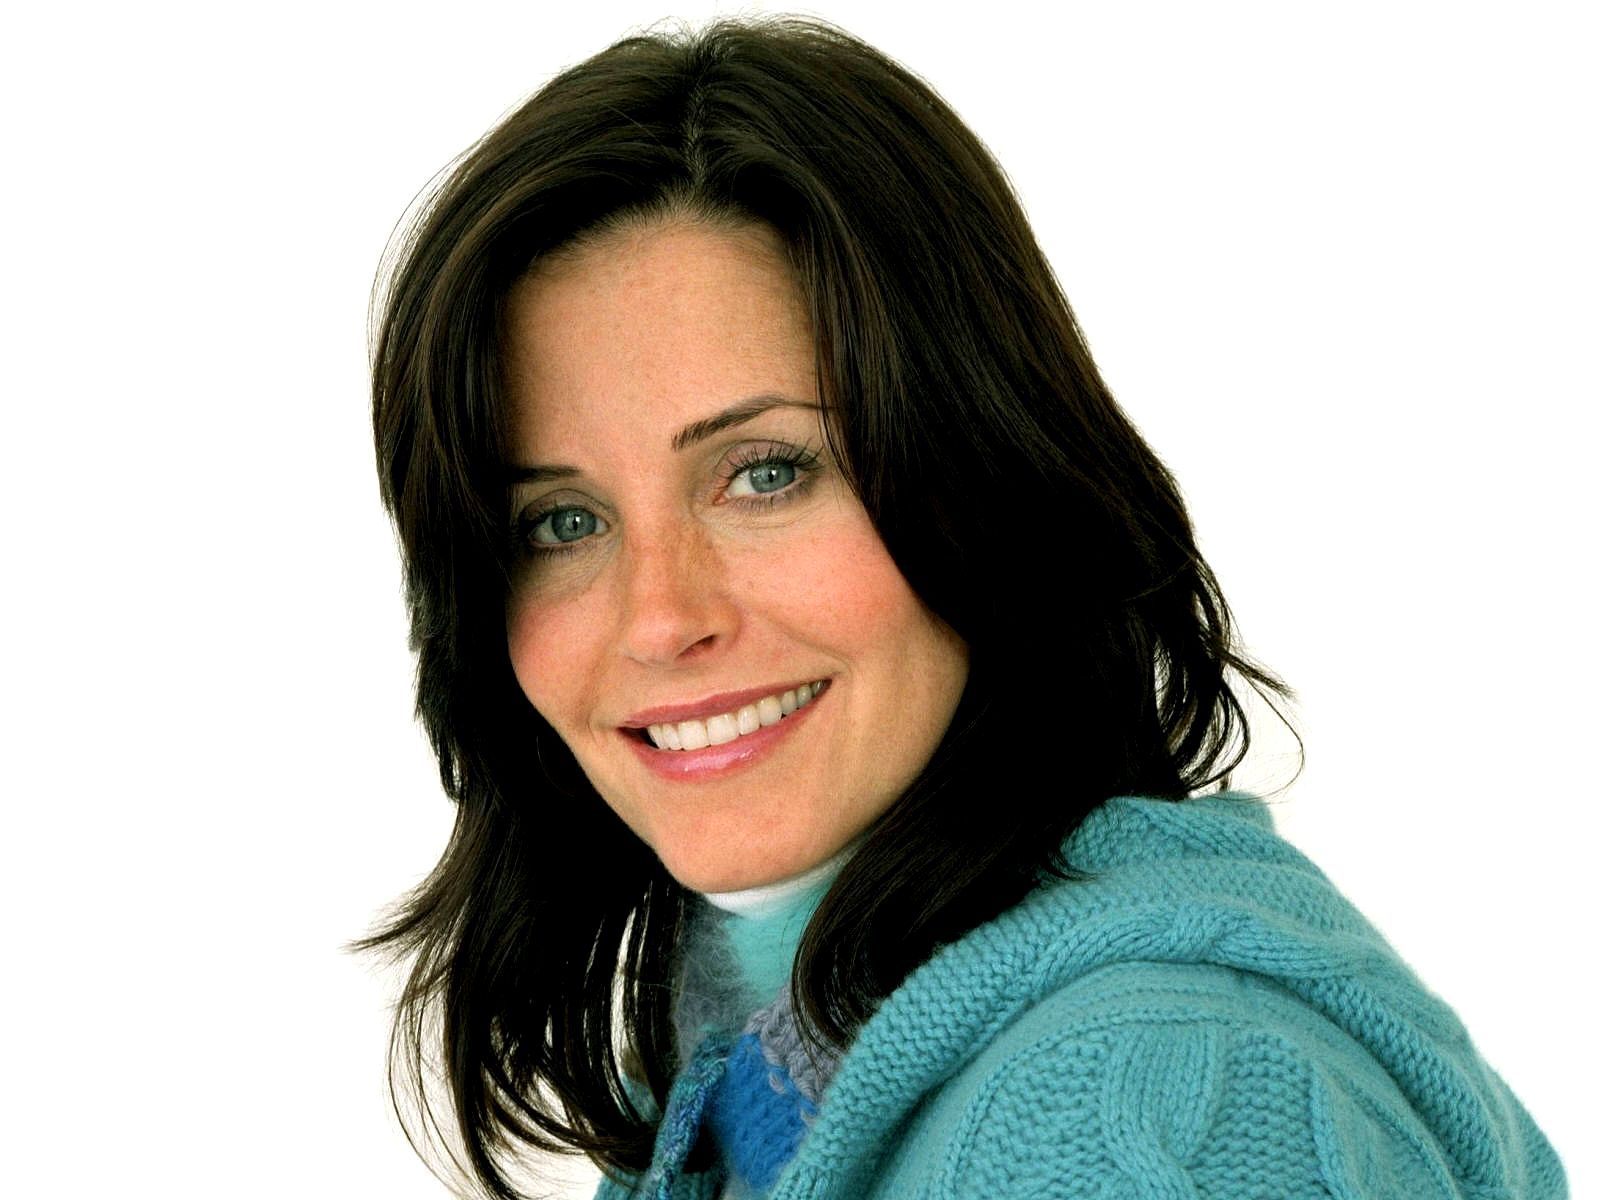 1600x1200 - Courtney Cox Wallpapers 28